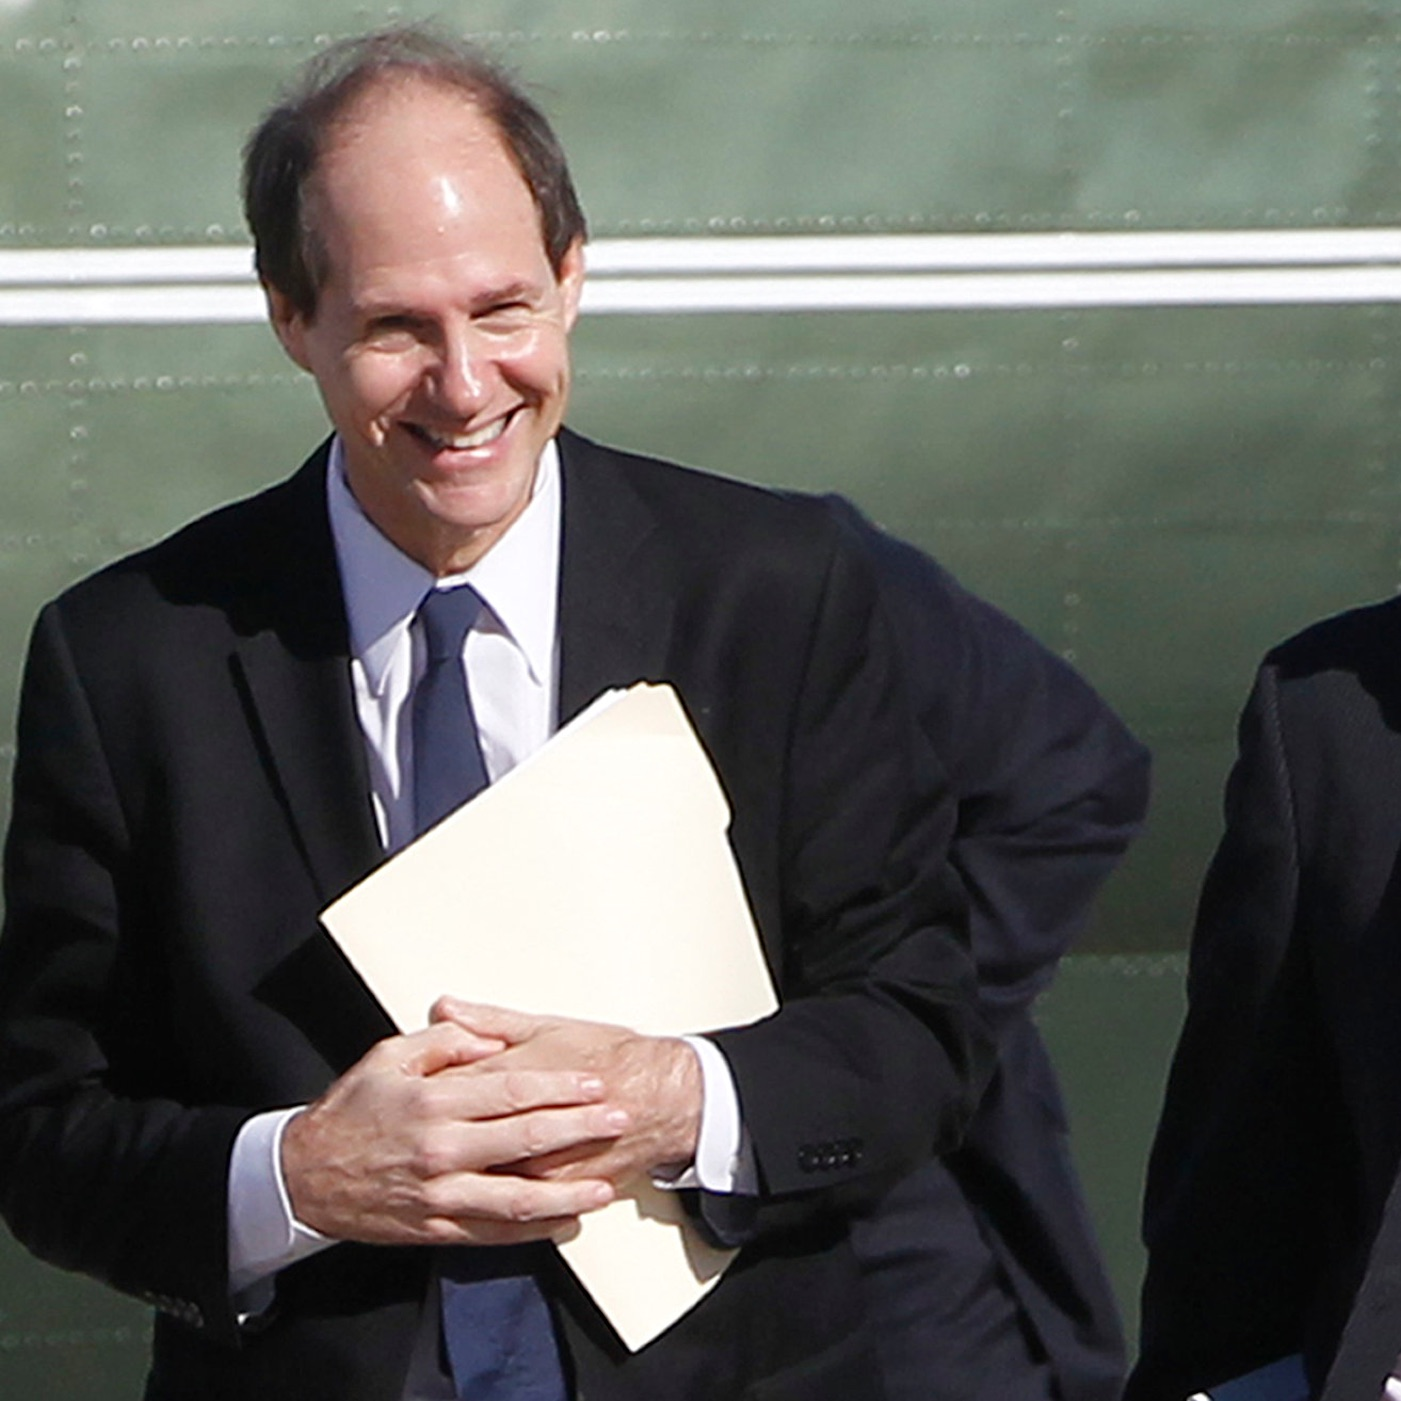 #59 - Prof Cass Sunstein on how change happens, and why it's so often abrupt & unpredictable